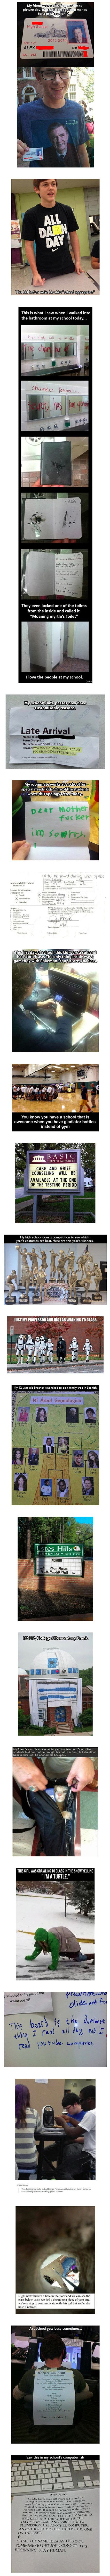 Here are some funny and geeky things that have been spotted at schools.